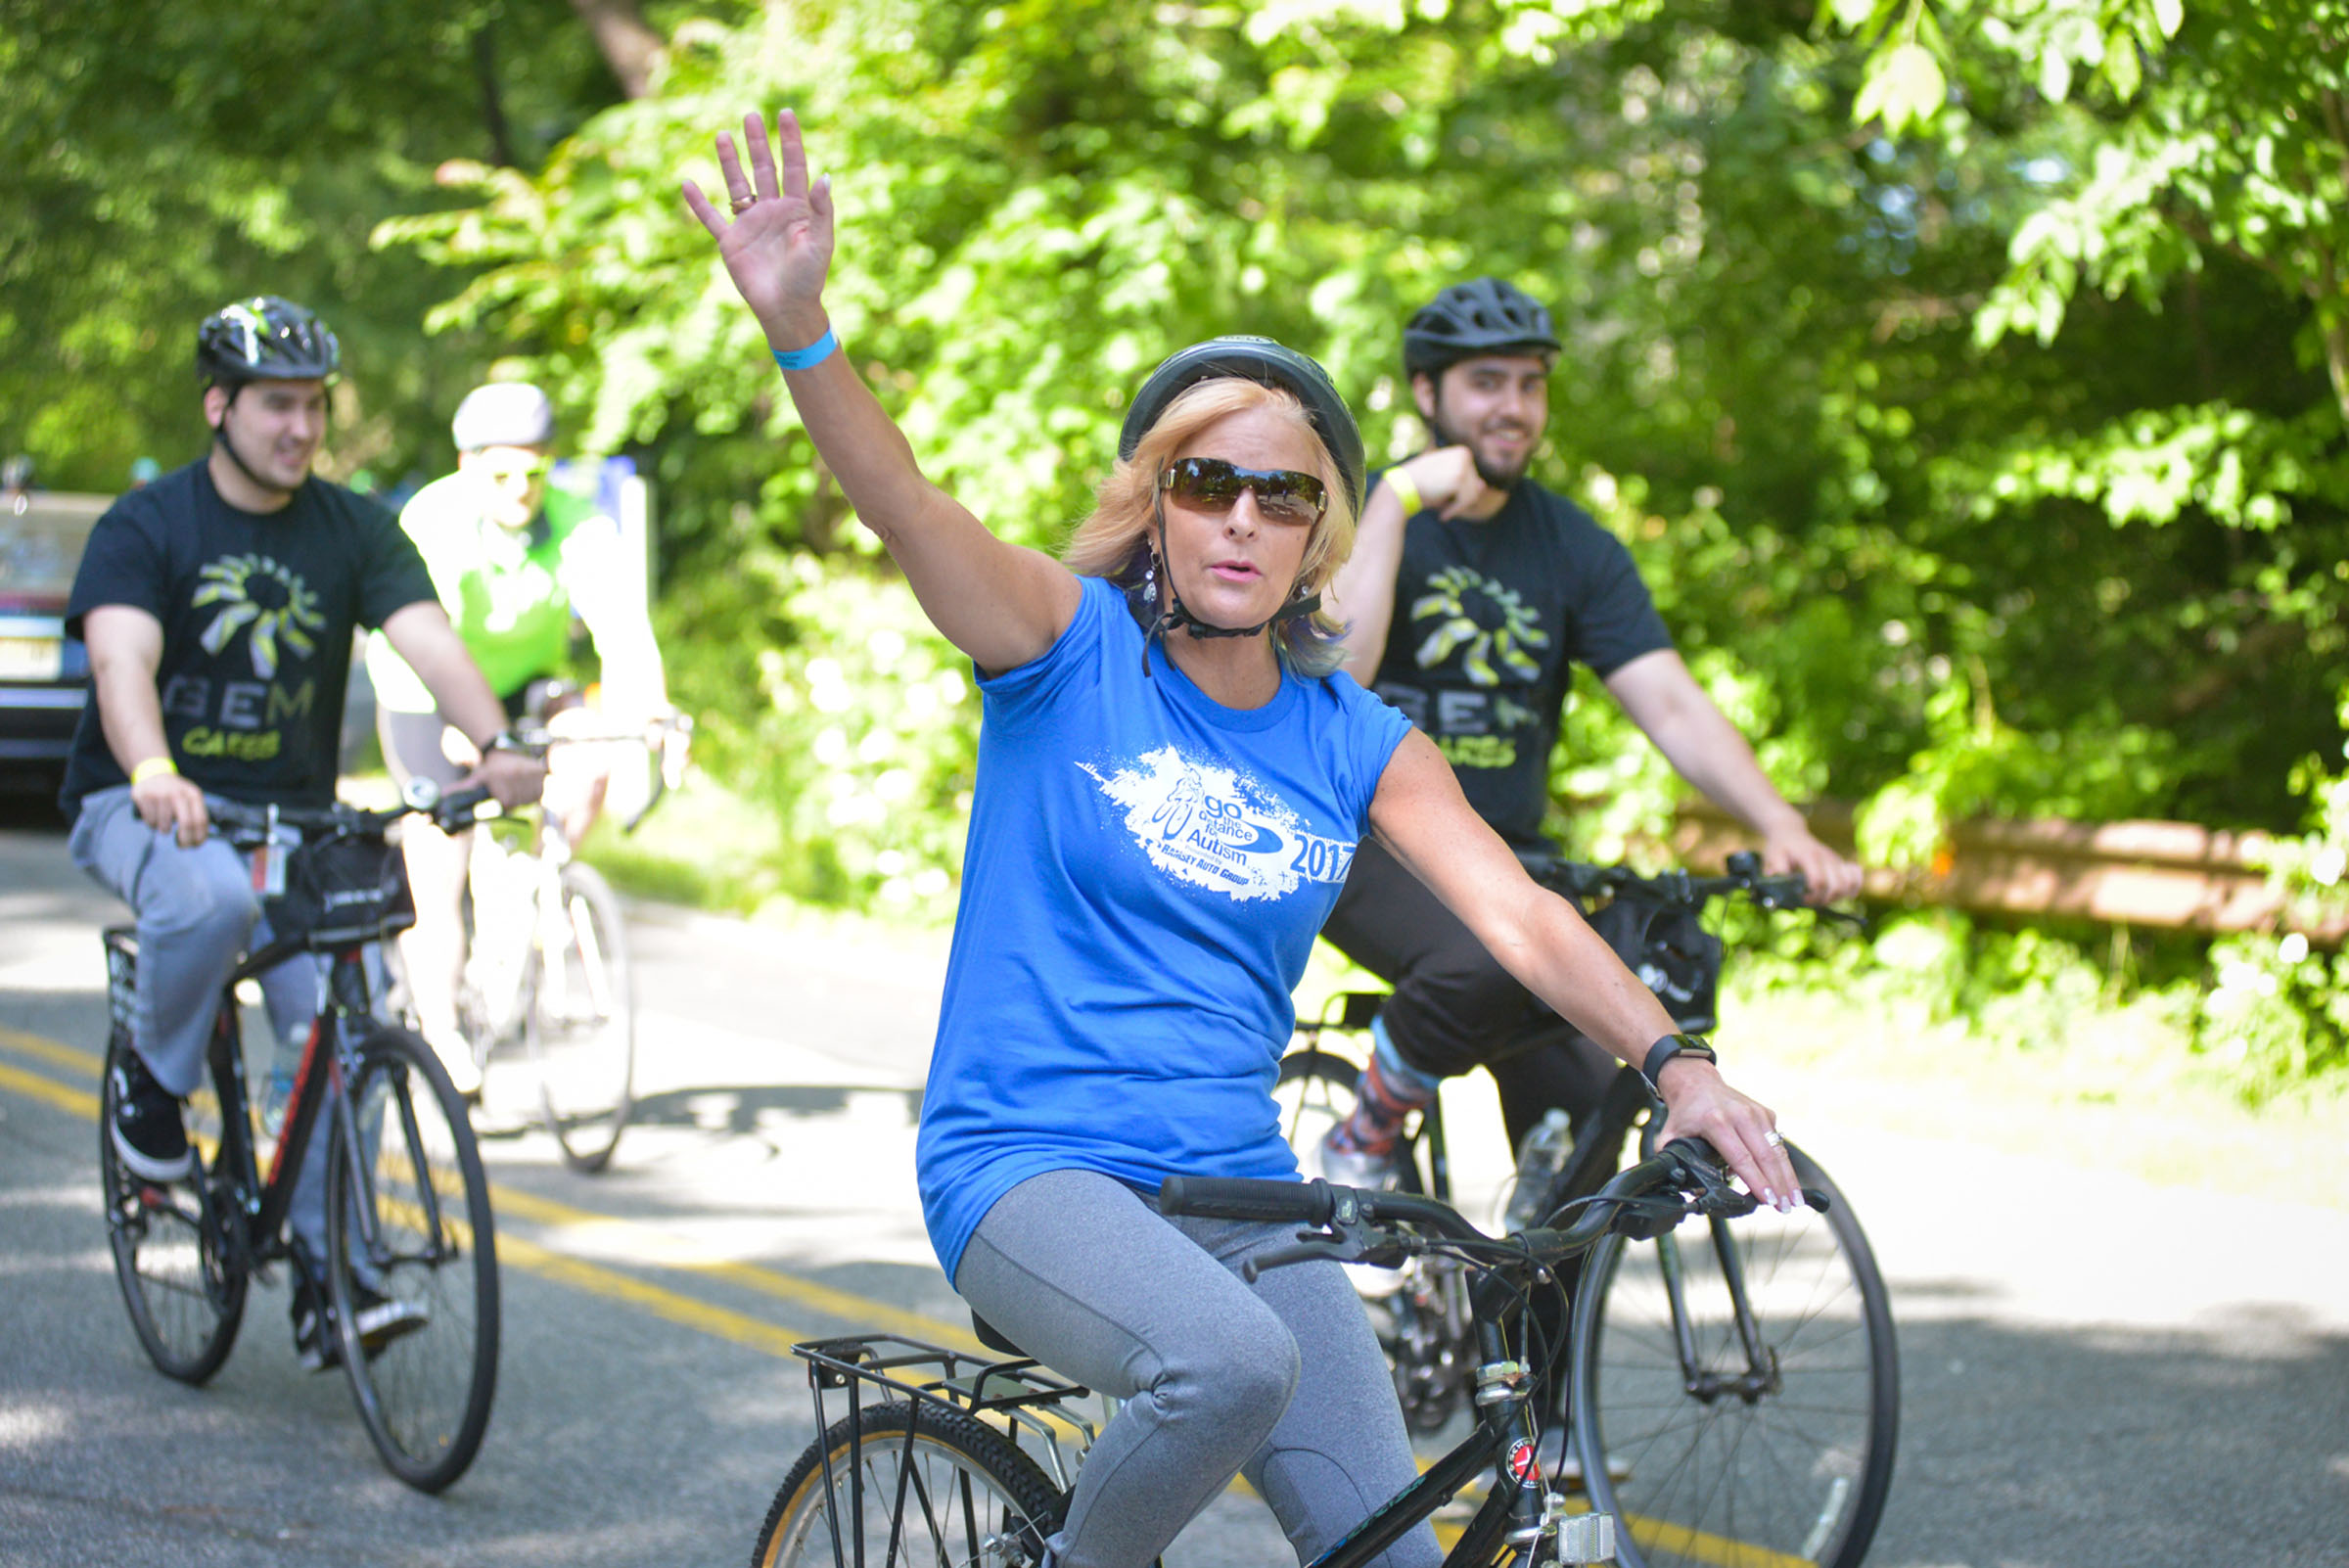 2017-06-04 GTD4A Charity Bike Ride - BCC - Paramus NJ-1978.jpg